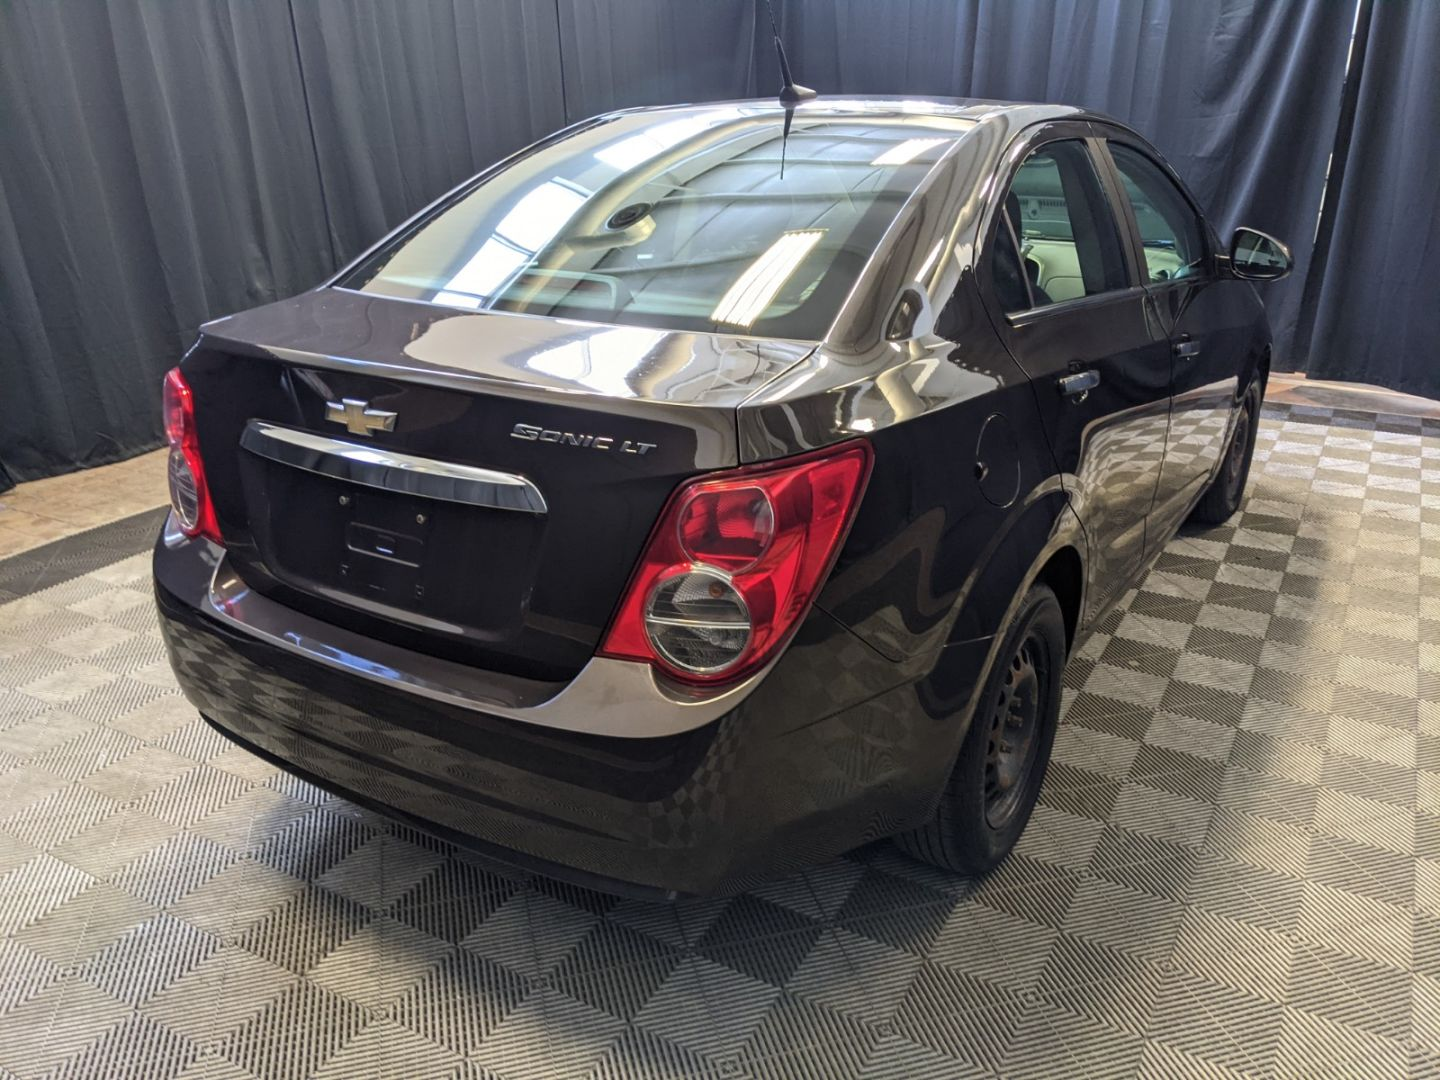 2013 Chevrolet Sonic LT for sale in Calgary, Alberta